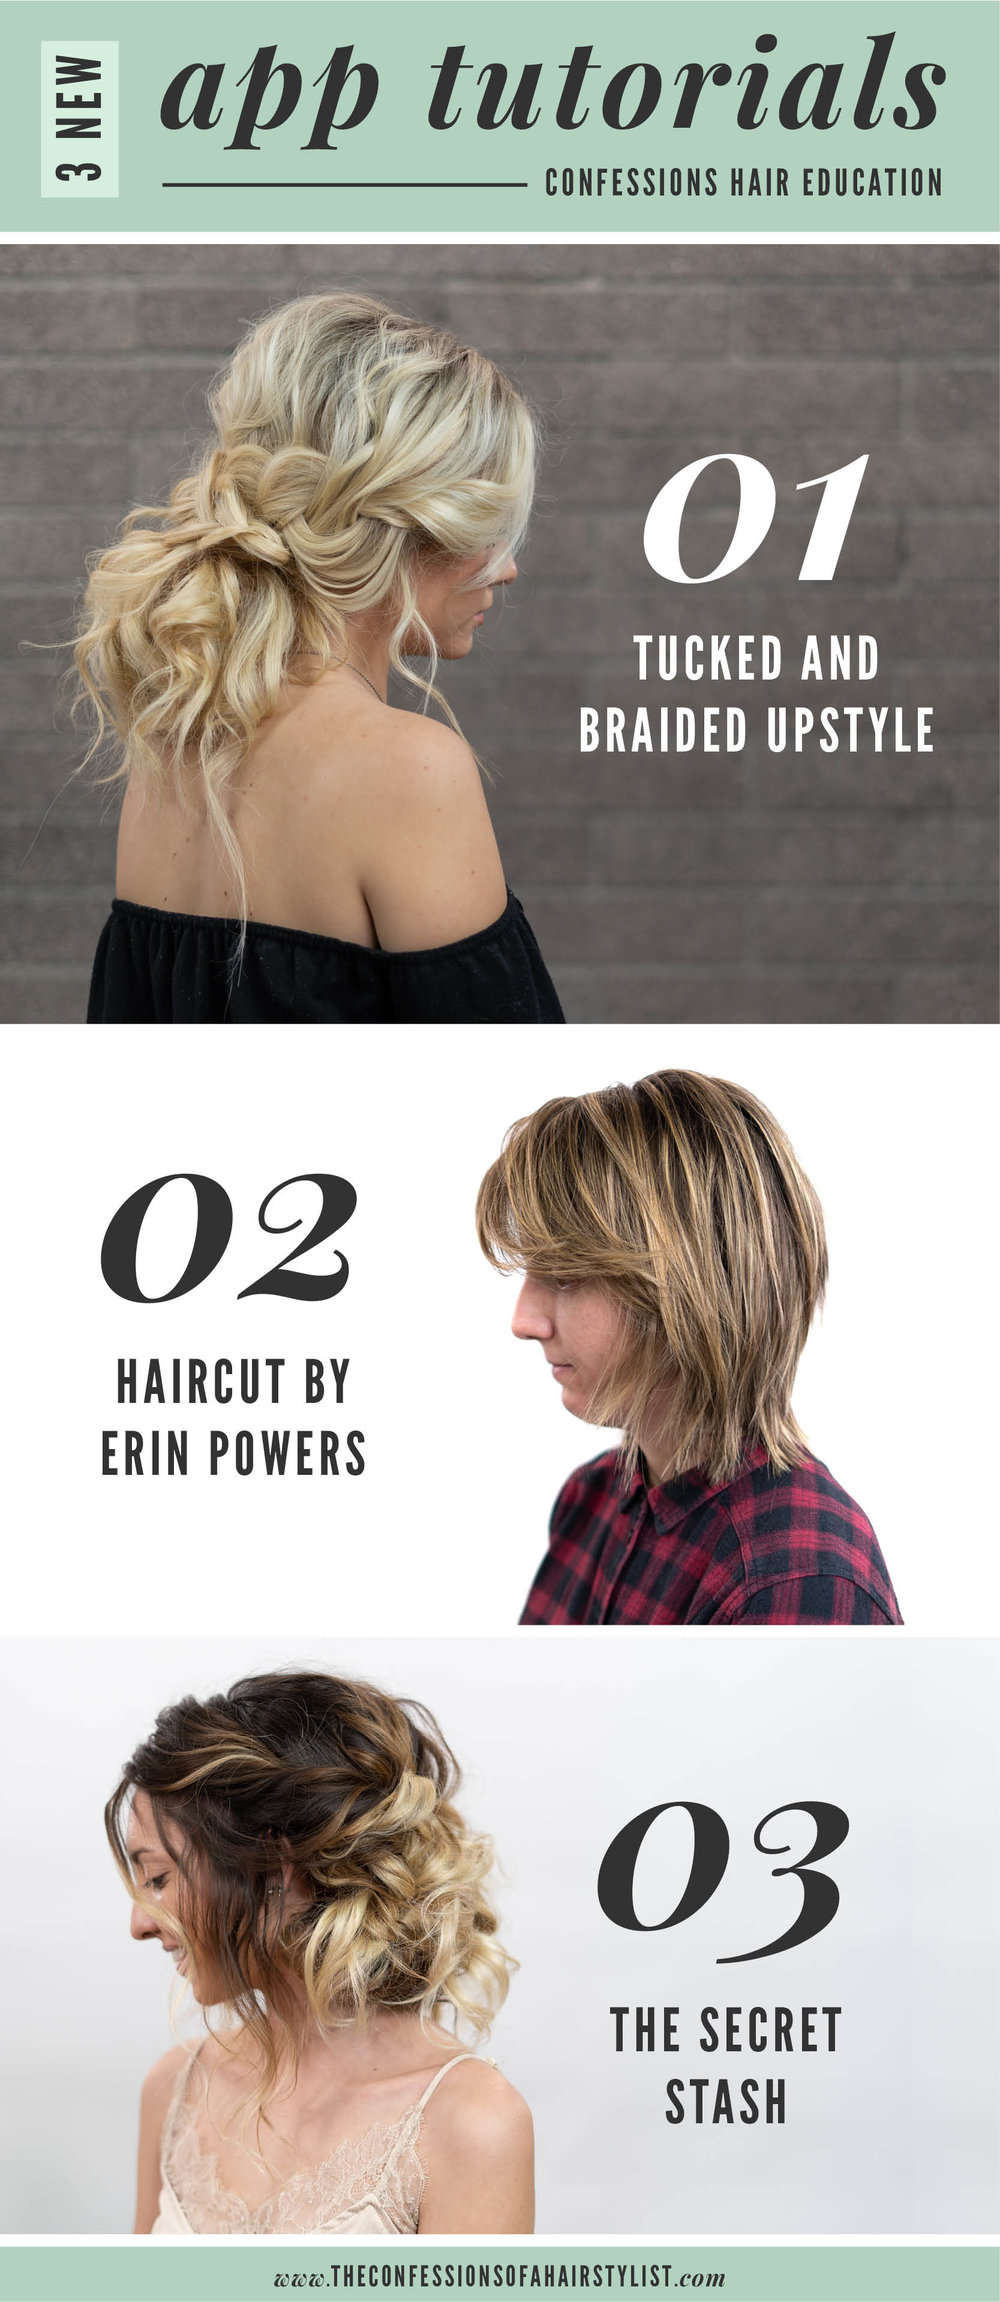 Tucked and Braided Upstyle, Haircut by Erin Powers, The Secret Stash